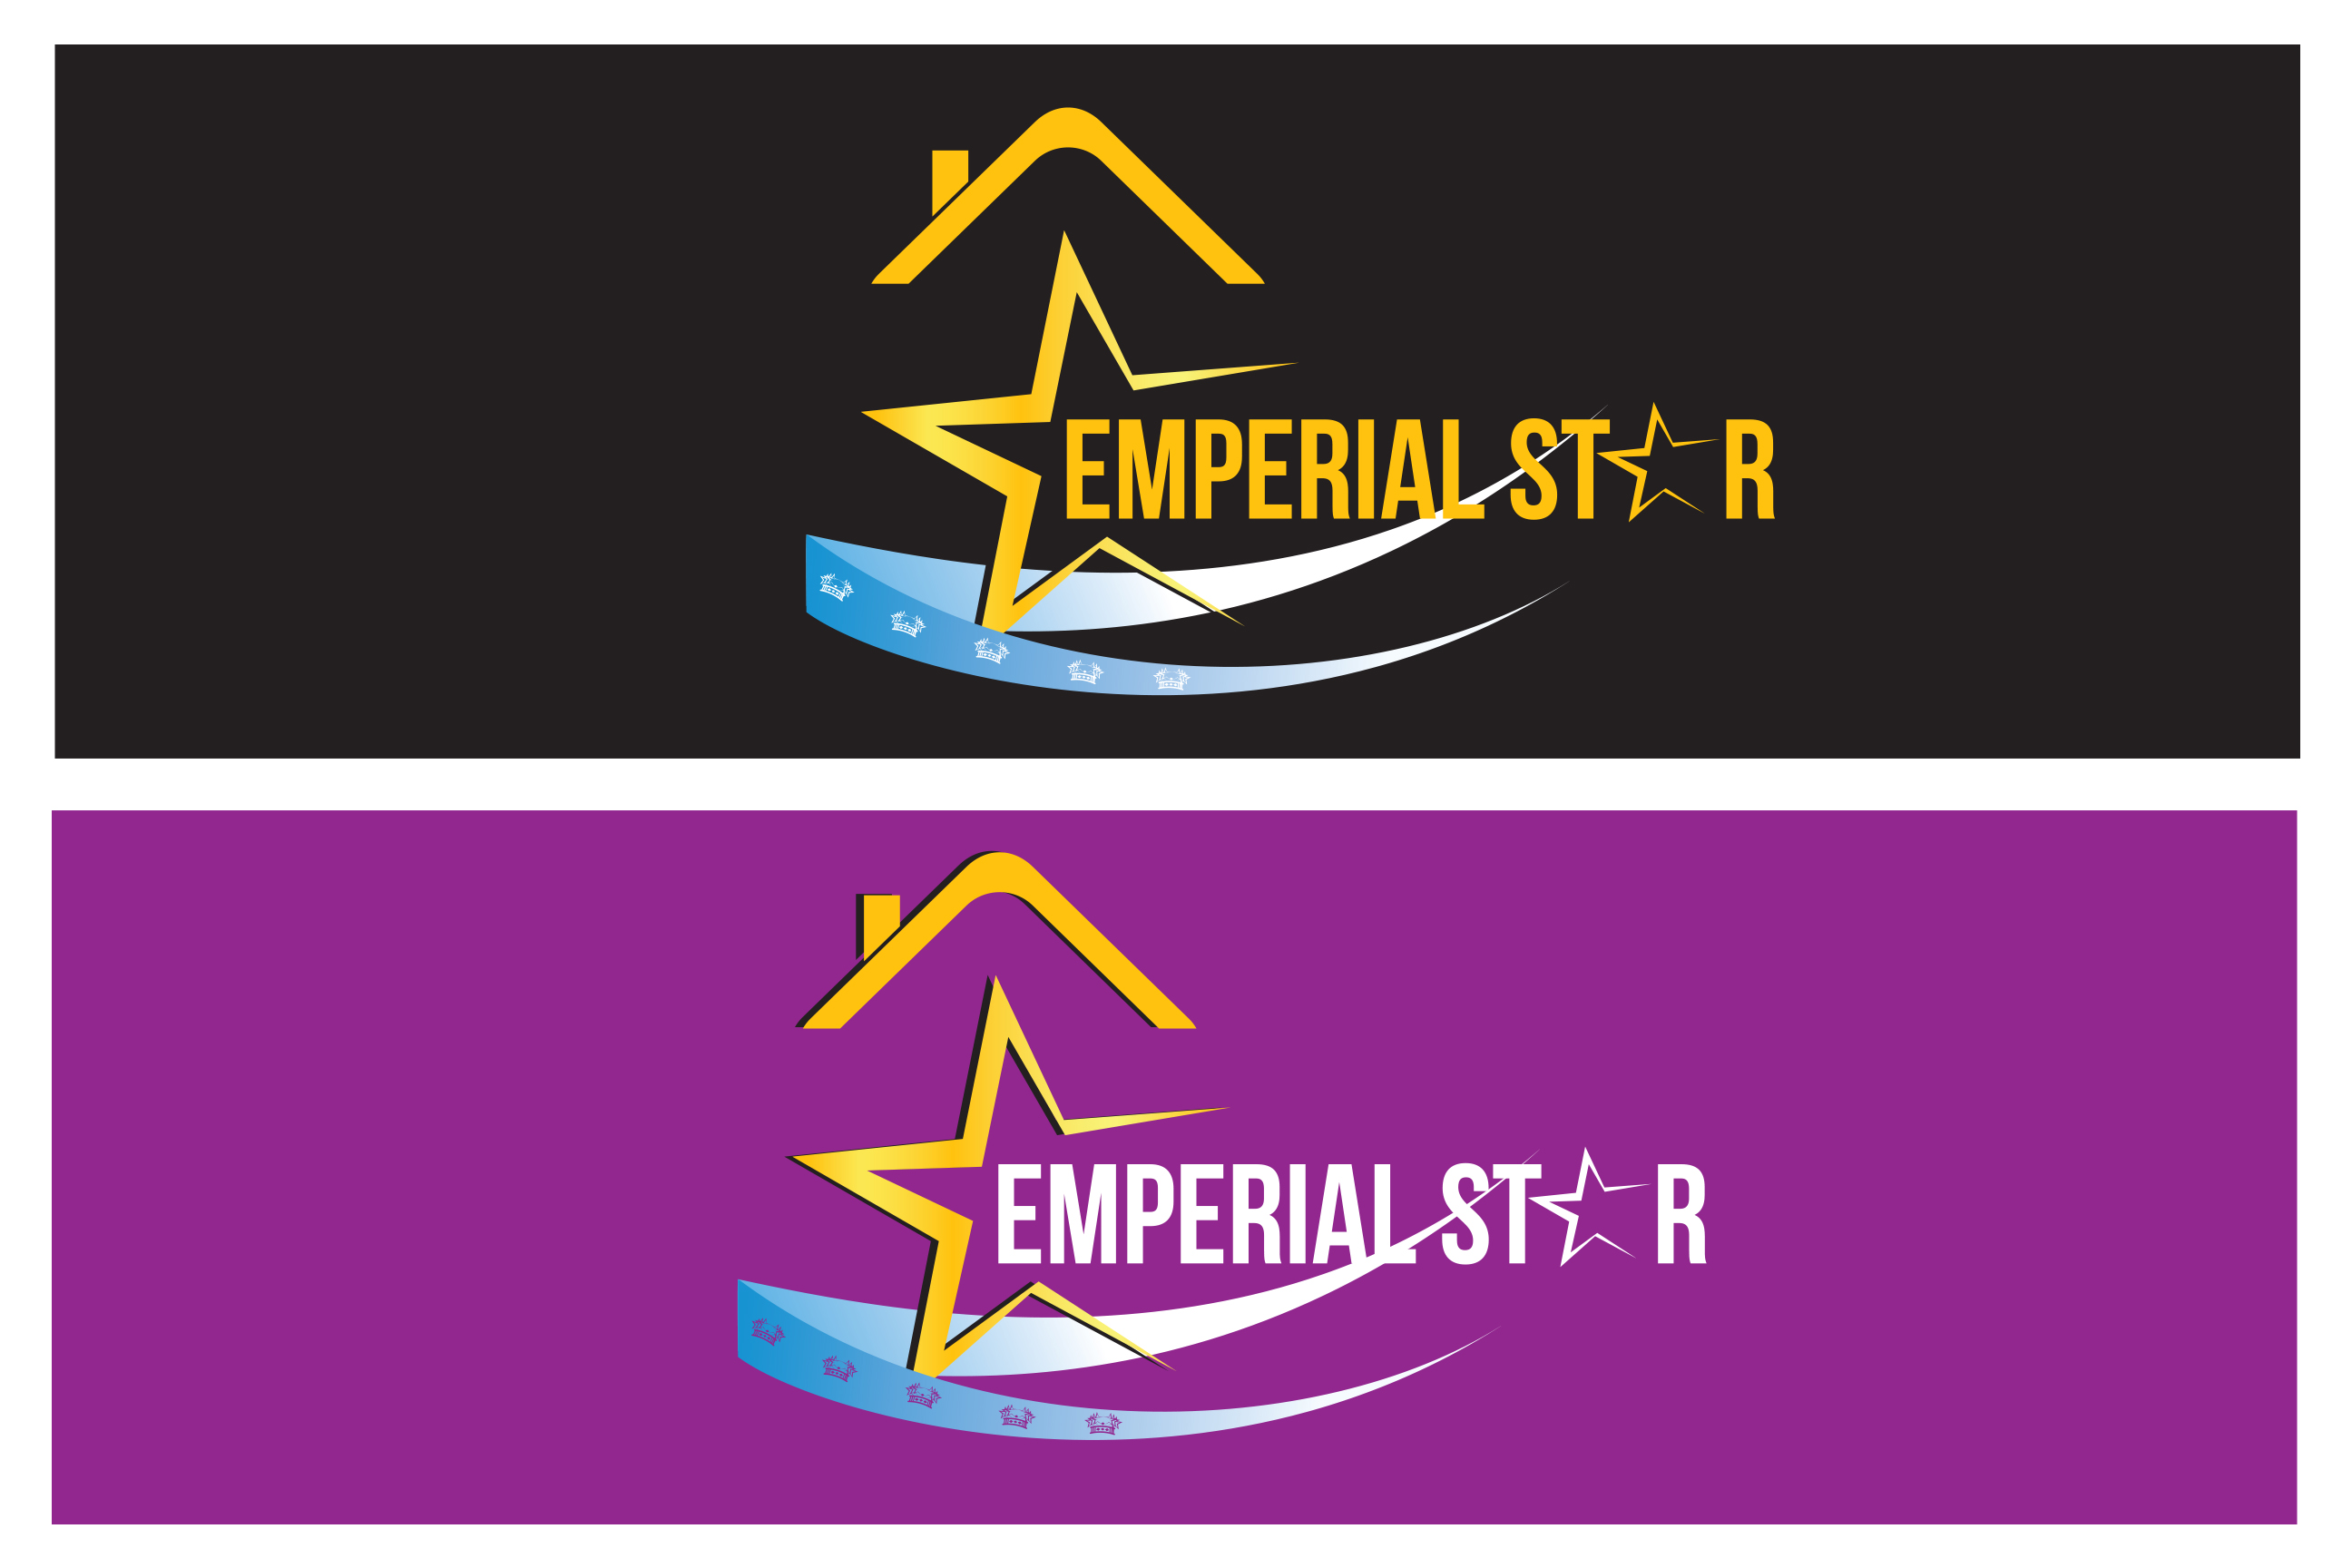 Logo Design by Leonard Anthony Alloso - Entry No. 158 in the Logo Design Contest Emperial Star Logo Design.